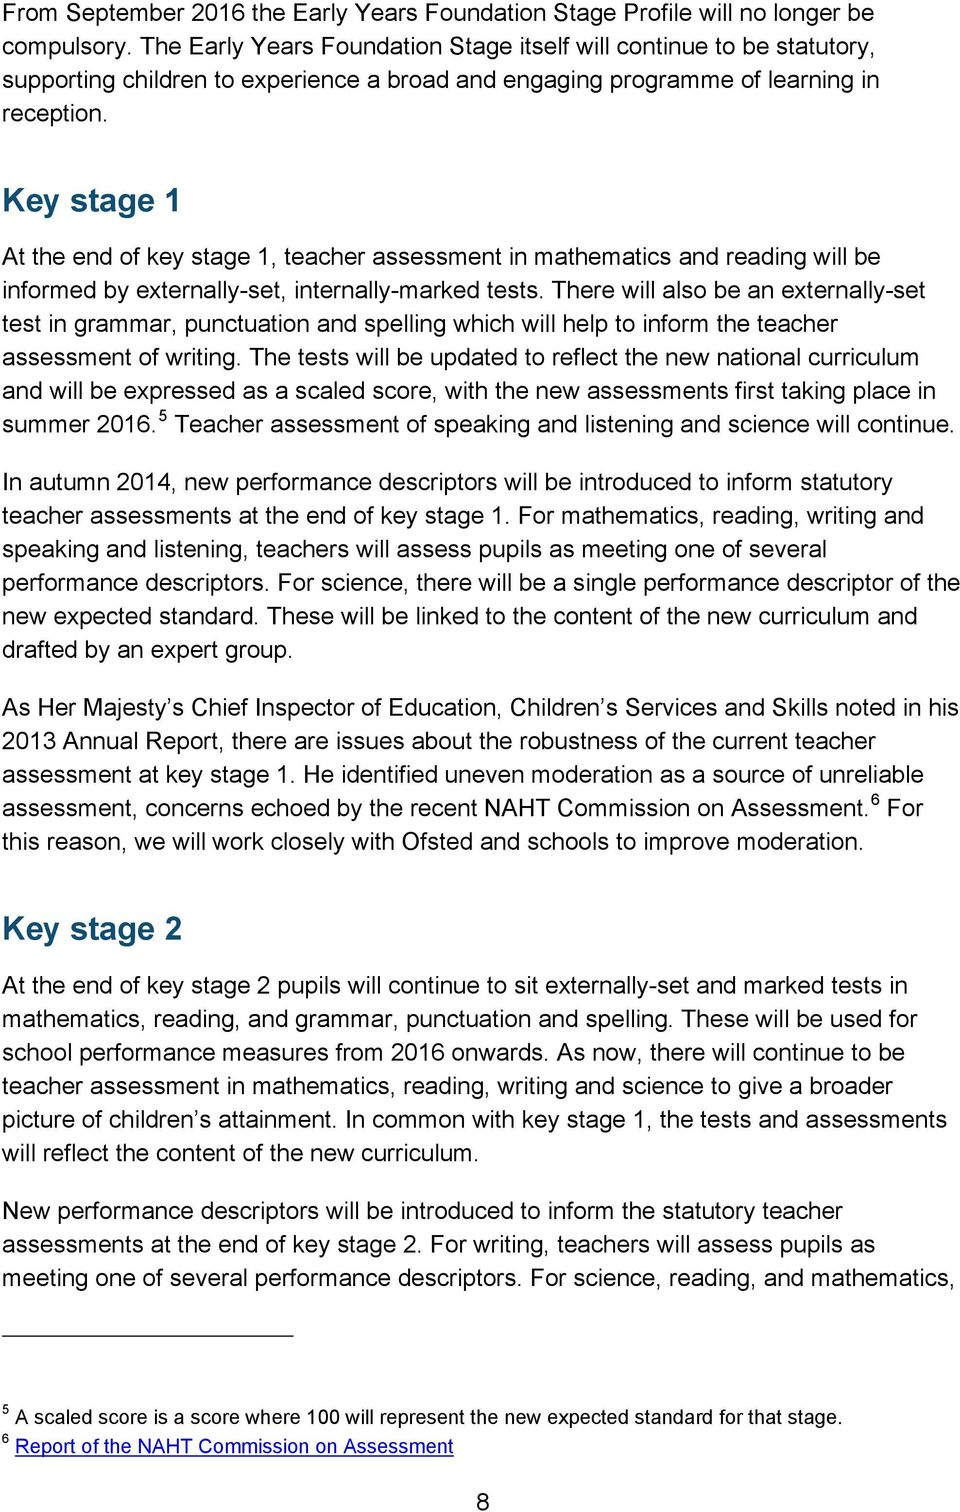 Key stage 1 At the end of key stage 1, teacher assessment in mathematics and reading will be informed by externally-set, internally-marked tests.